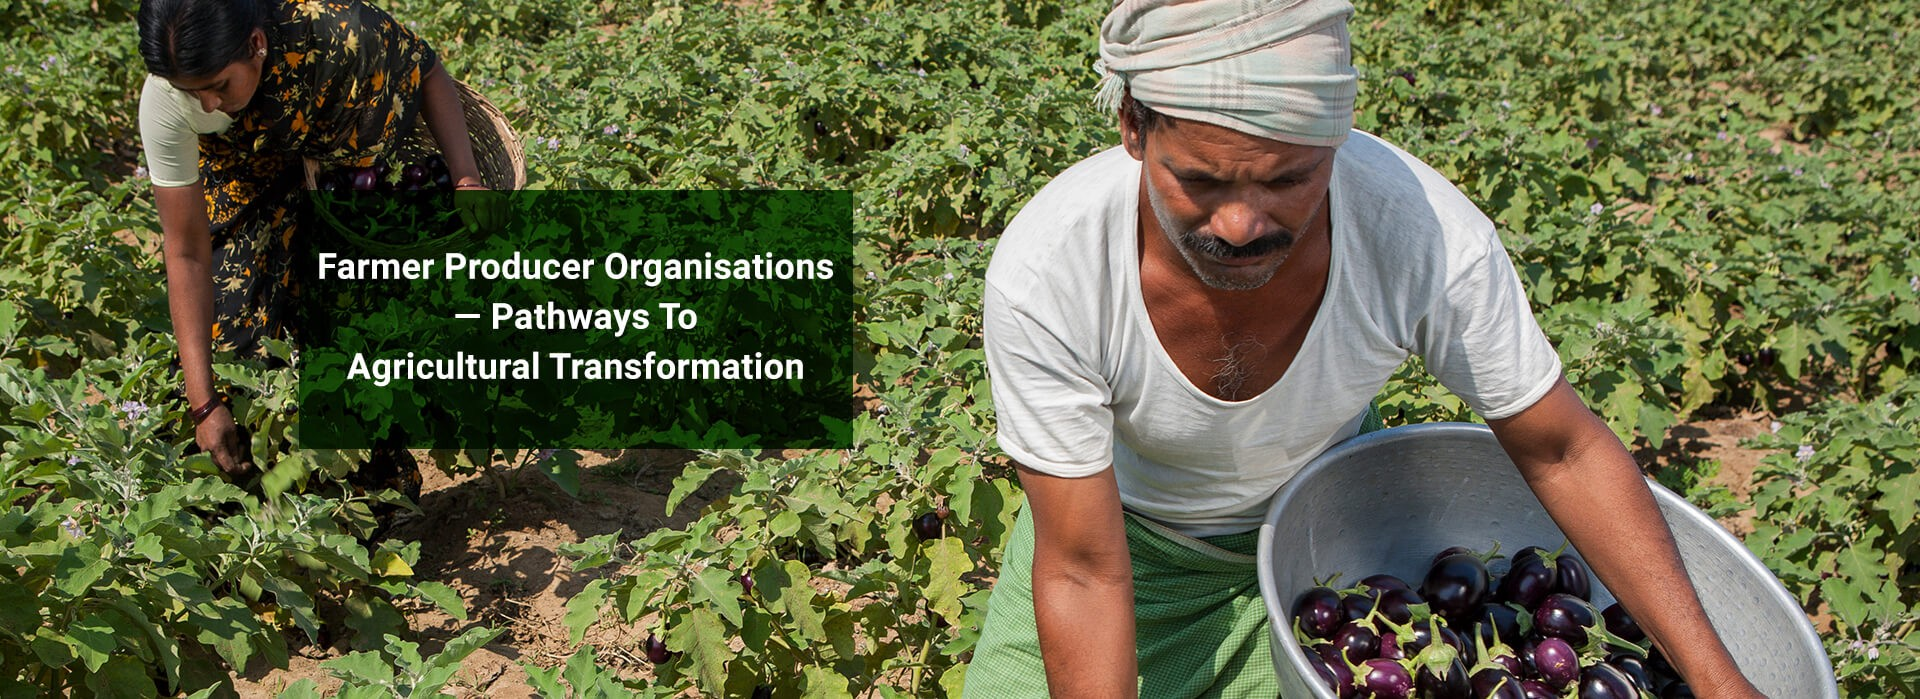 """Banner Image: """"Farmer Producer Organisations—Pathways To Agricultural Transformation"""""""